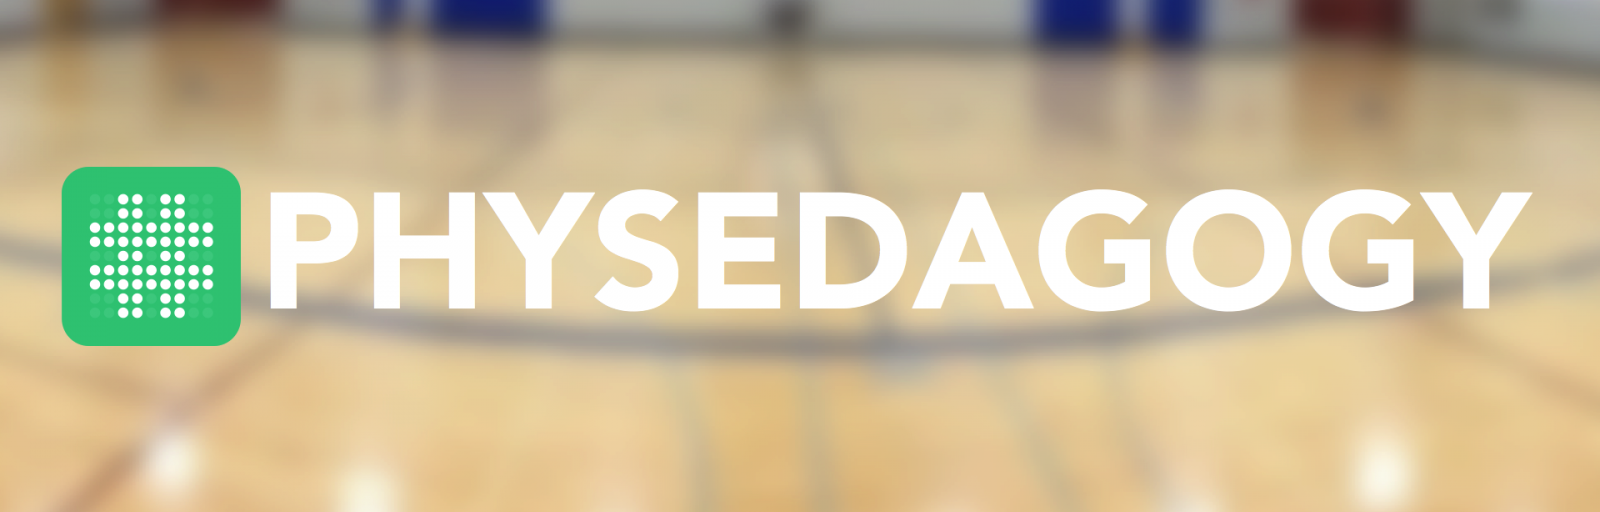 PHYSEDAGOGY